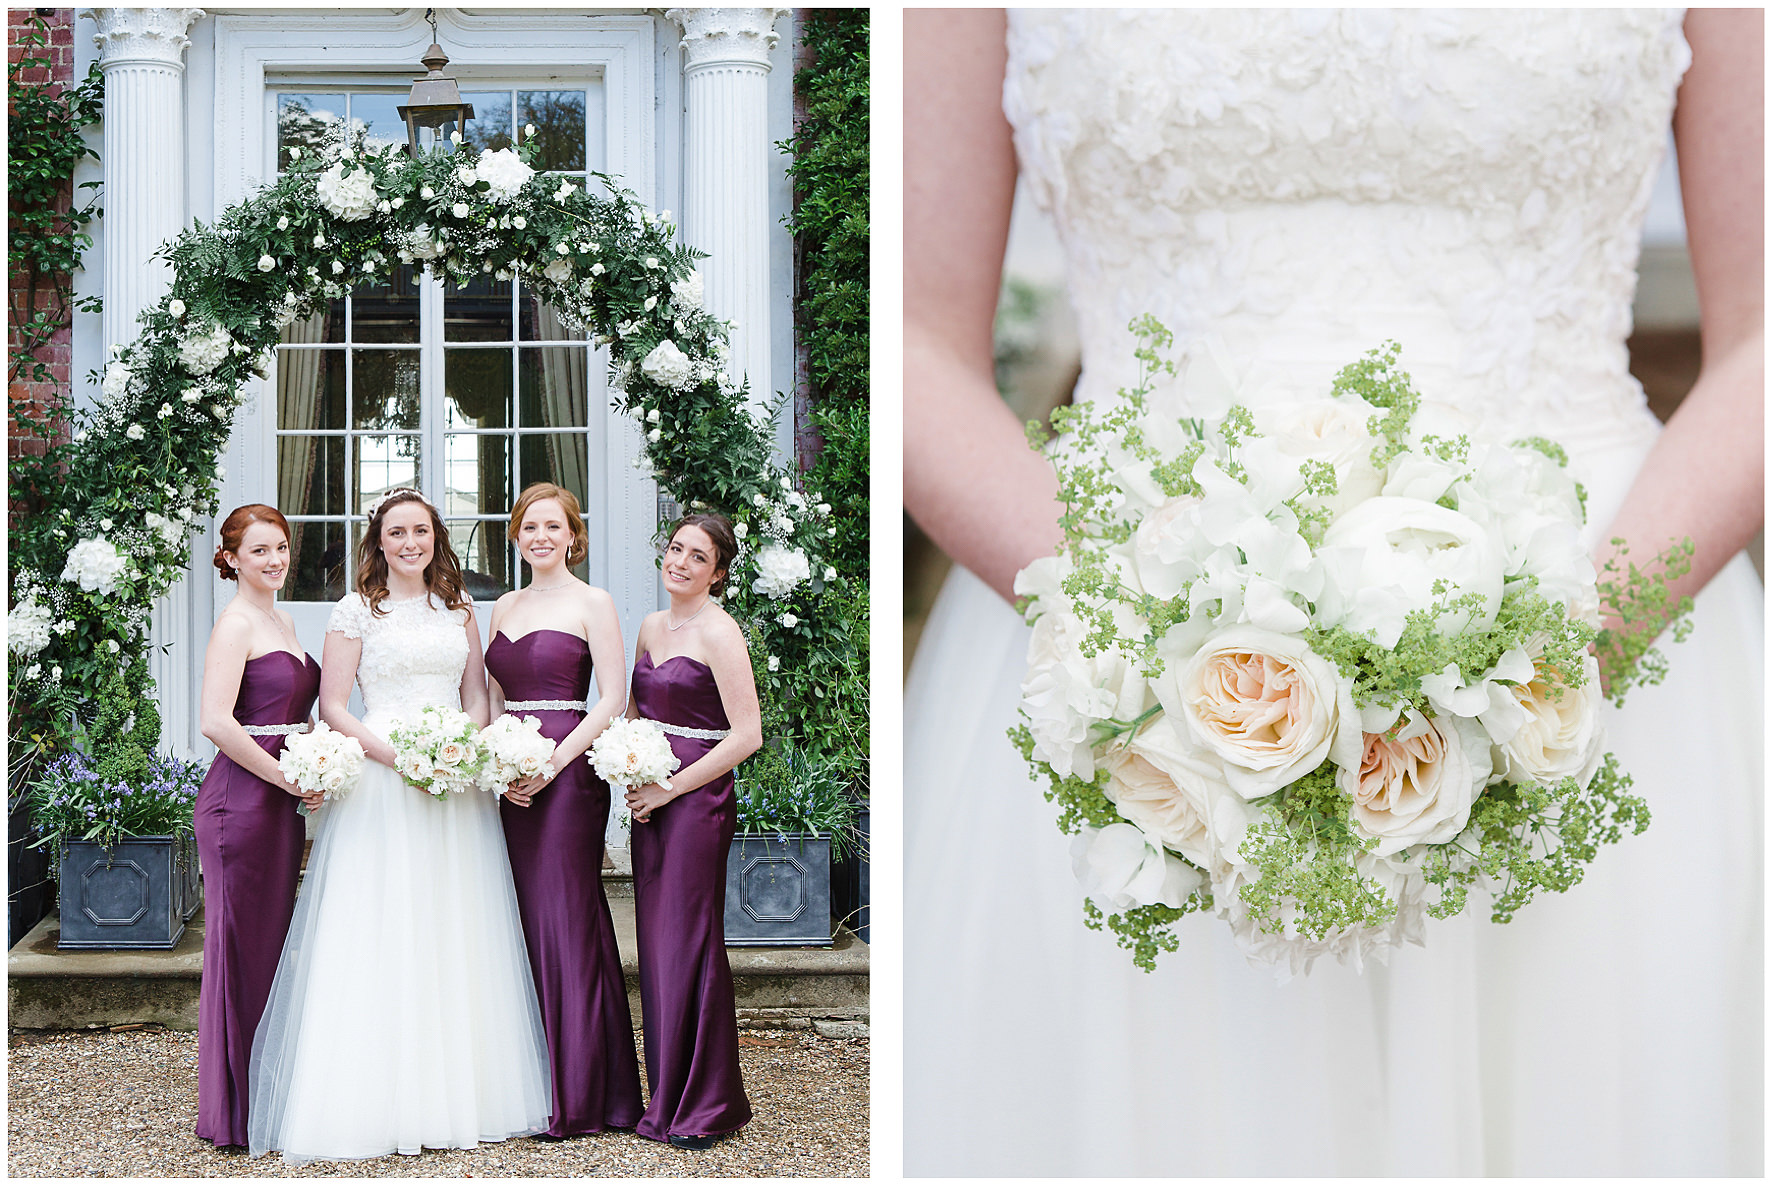 luxury wedding, berkshire, home wedding, bouquet, floral details, floral arch, bridal party, bridesmaids, Lucy Davenport Photography